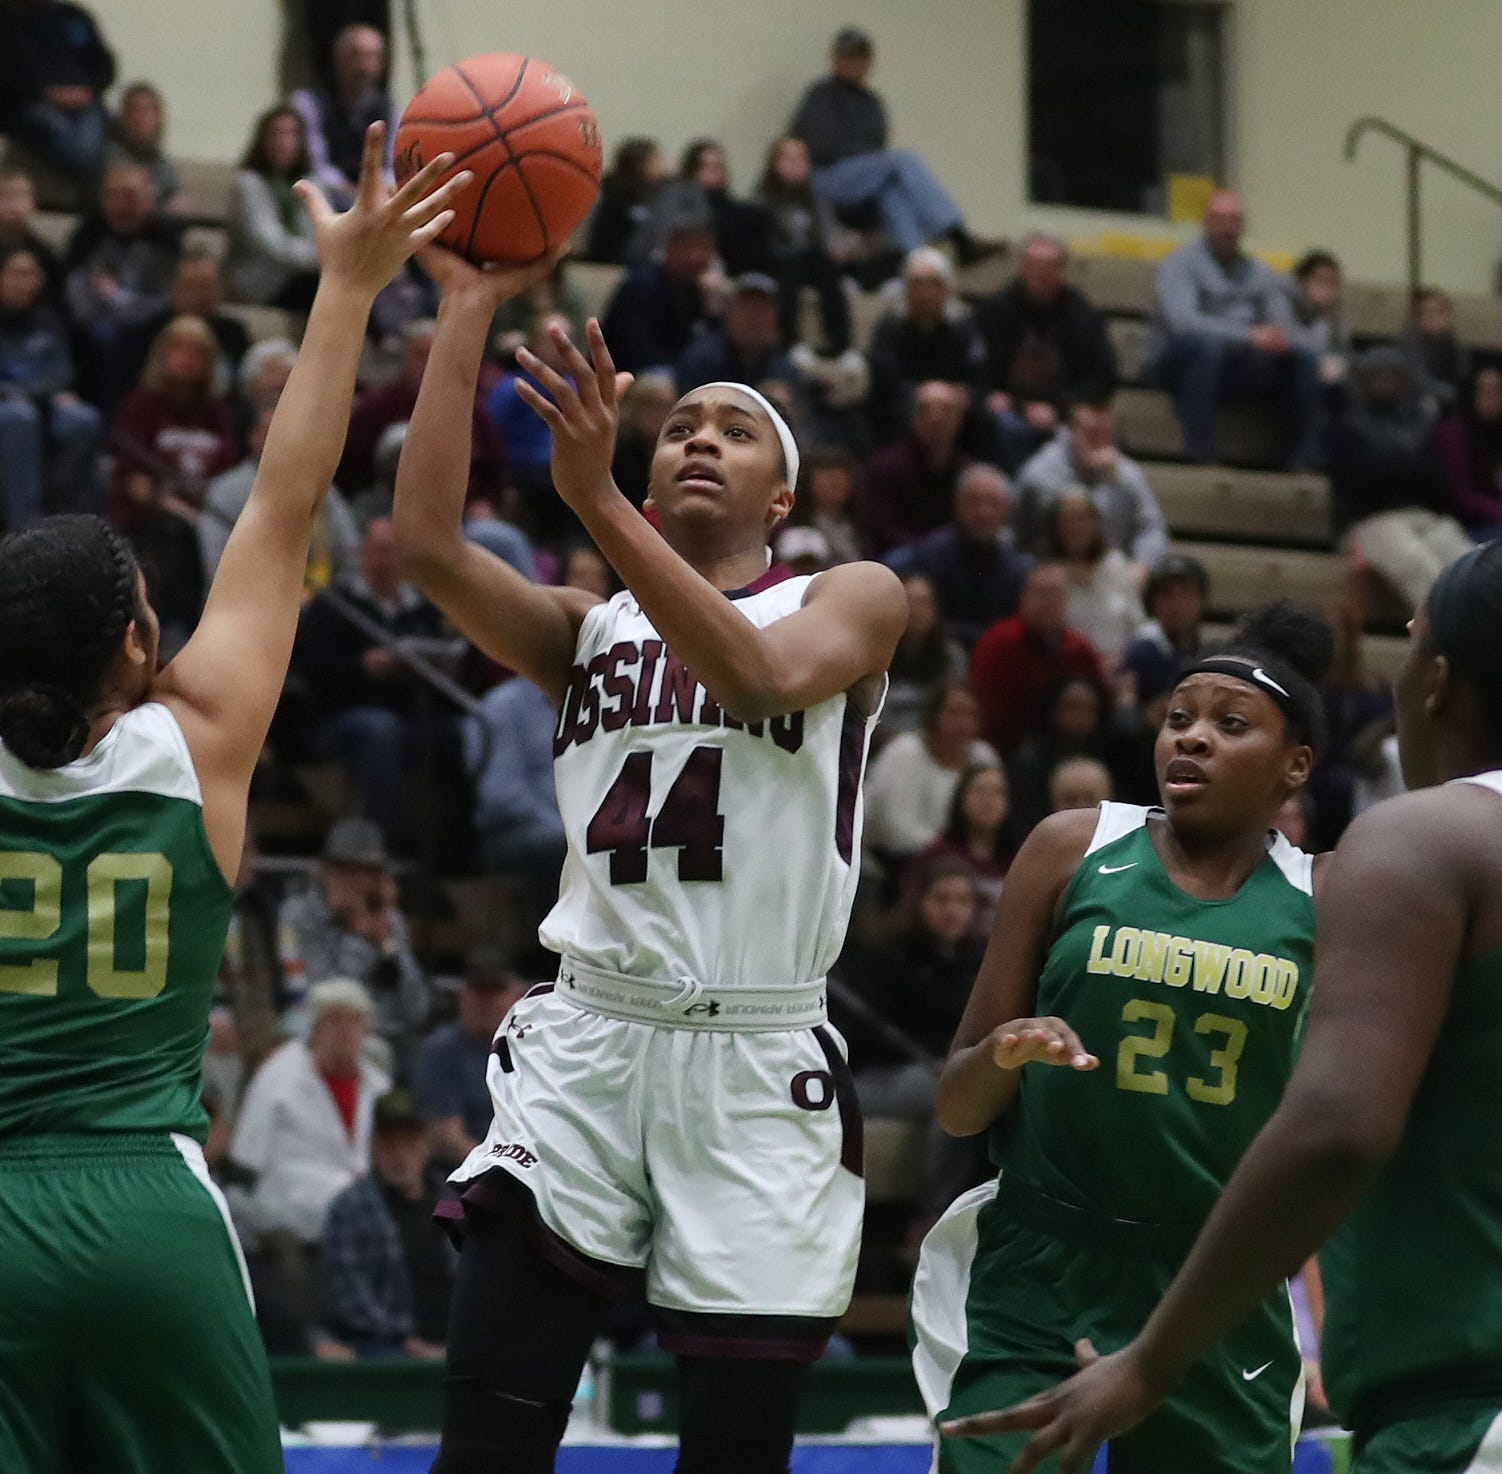 Girls basketball: Aubrey Griffin leads Ossining past Longwood, into 'AA' state final